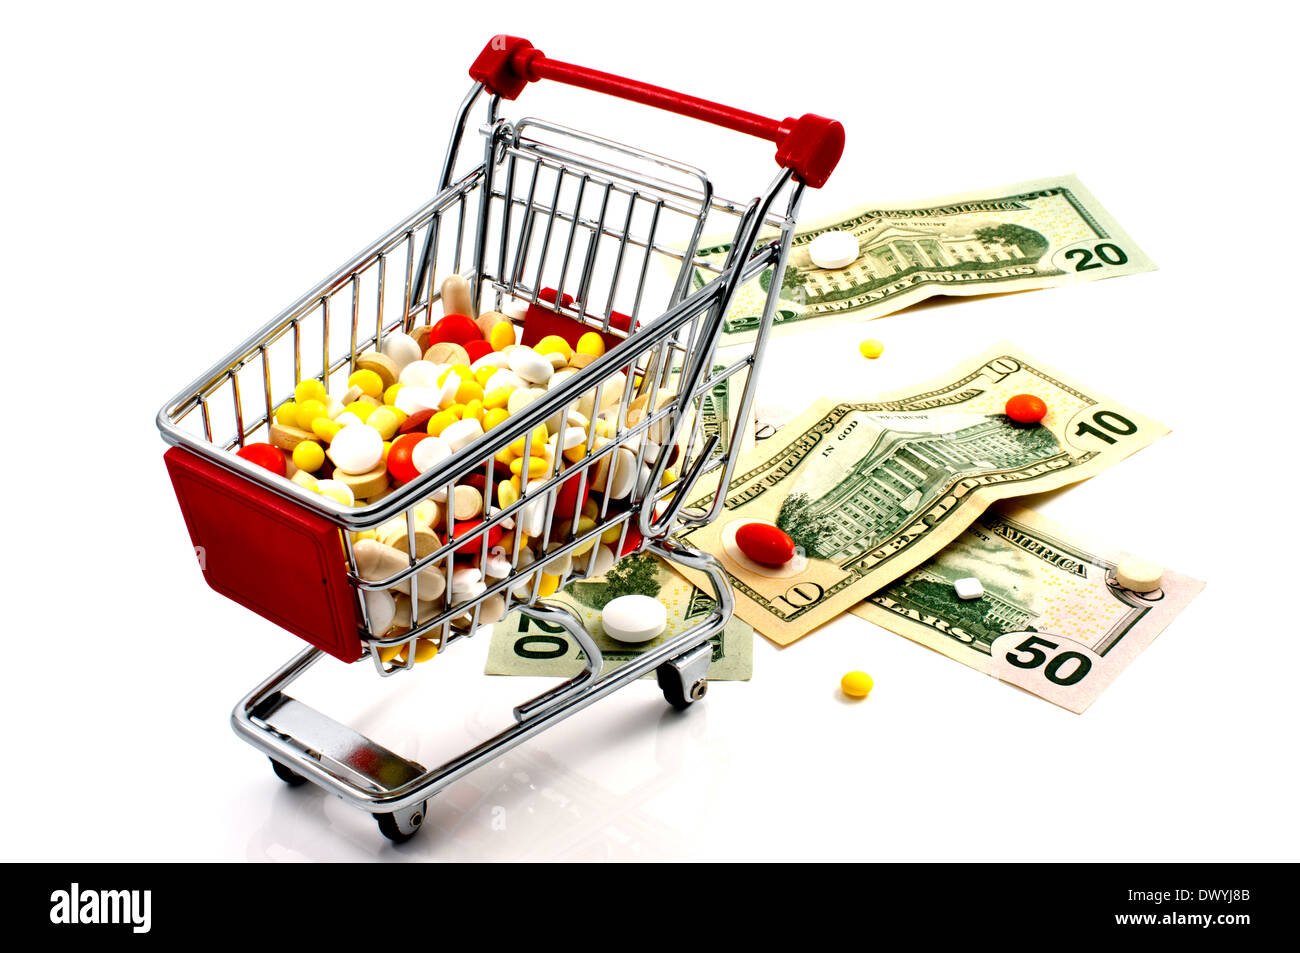 Drugs in the shopping cart on a white background. Money and pills nearby. Stock Photo